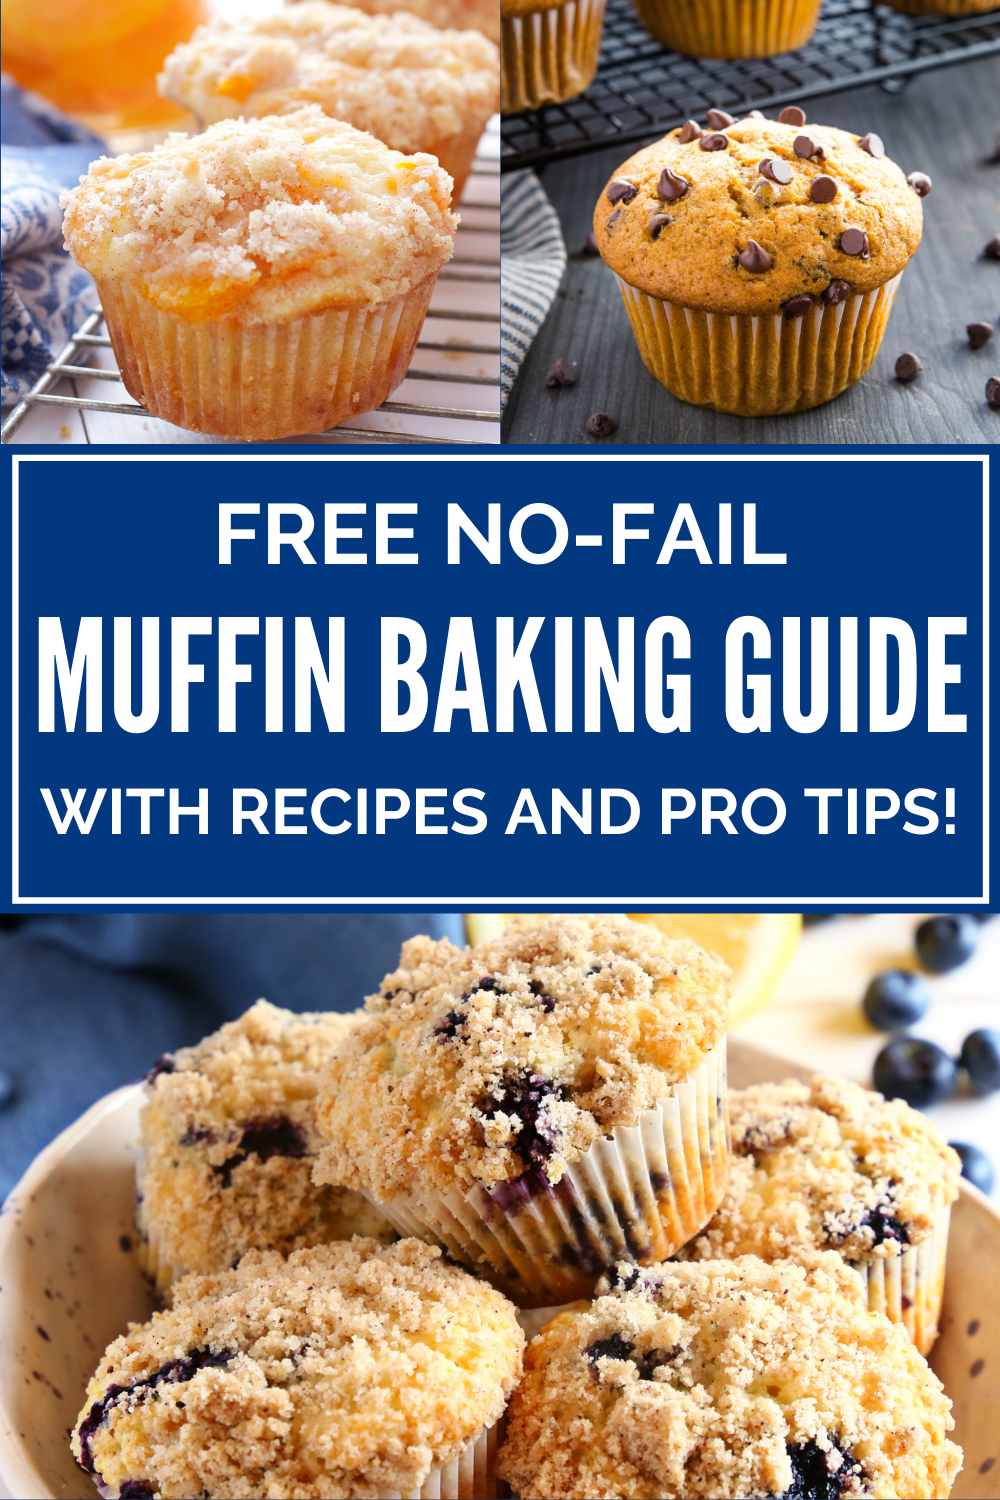 Free No-Fail Muffin Baking Guide! Make the best muffins you've ever made with my recipes and pro tips! Sign up at thebusybaker.ca! #recipes #muffins #protips #howtobake #bakingtips #howtobakemuffins via @busybakerblog